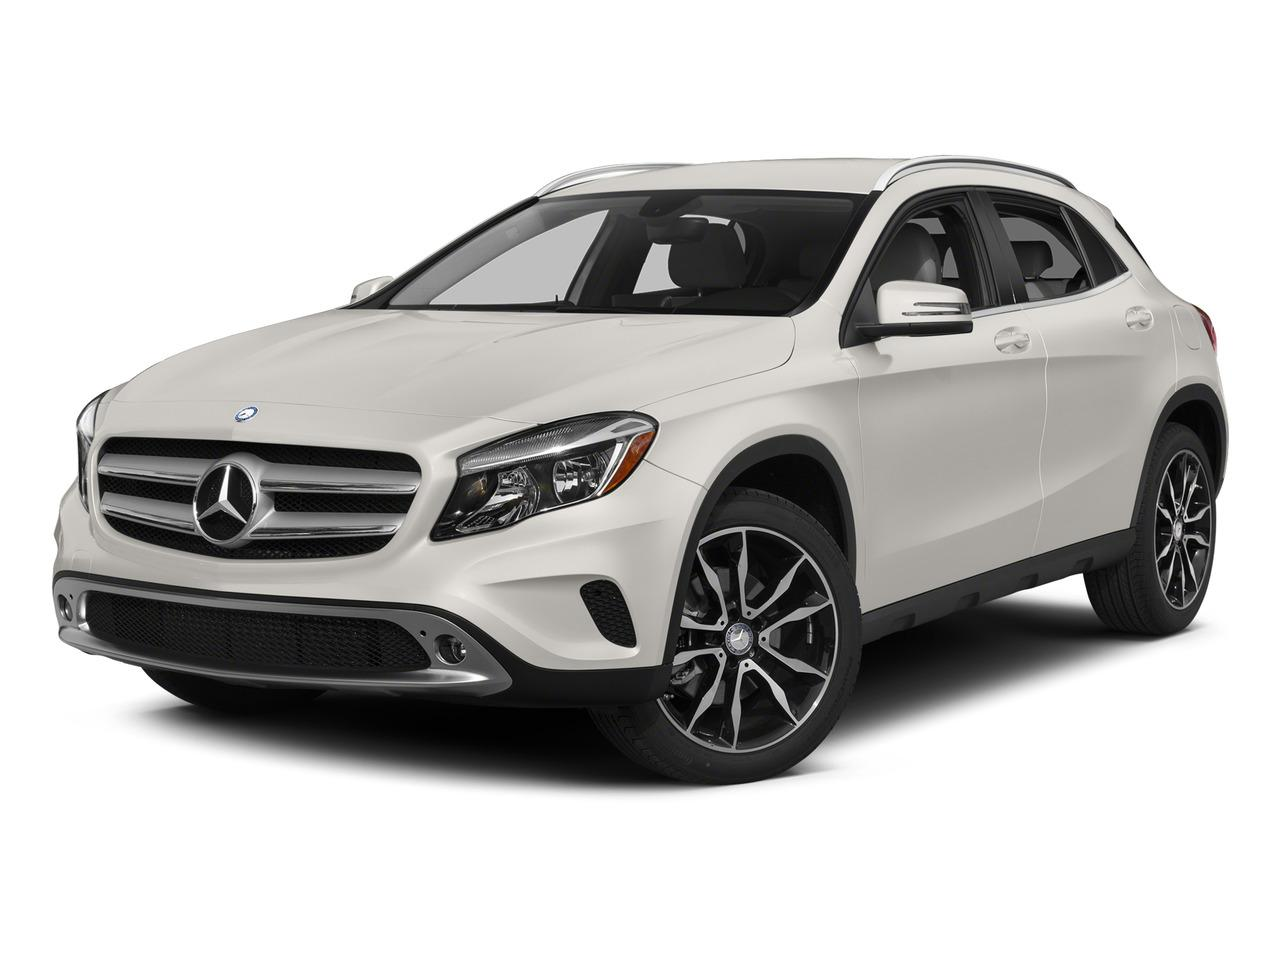 2015 Mercedes-Benz GLA-Class Vehicle Photo in Bowie, MD 20716